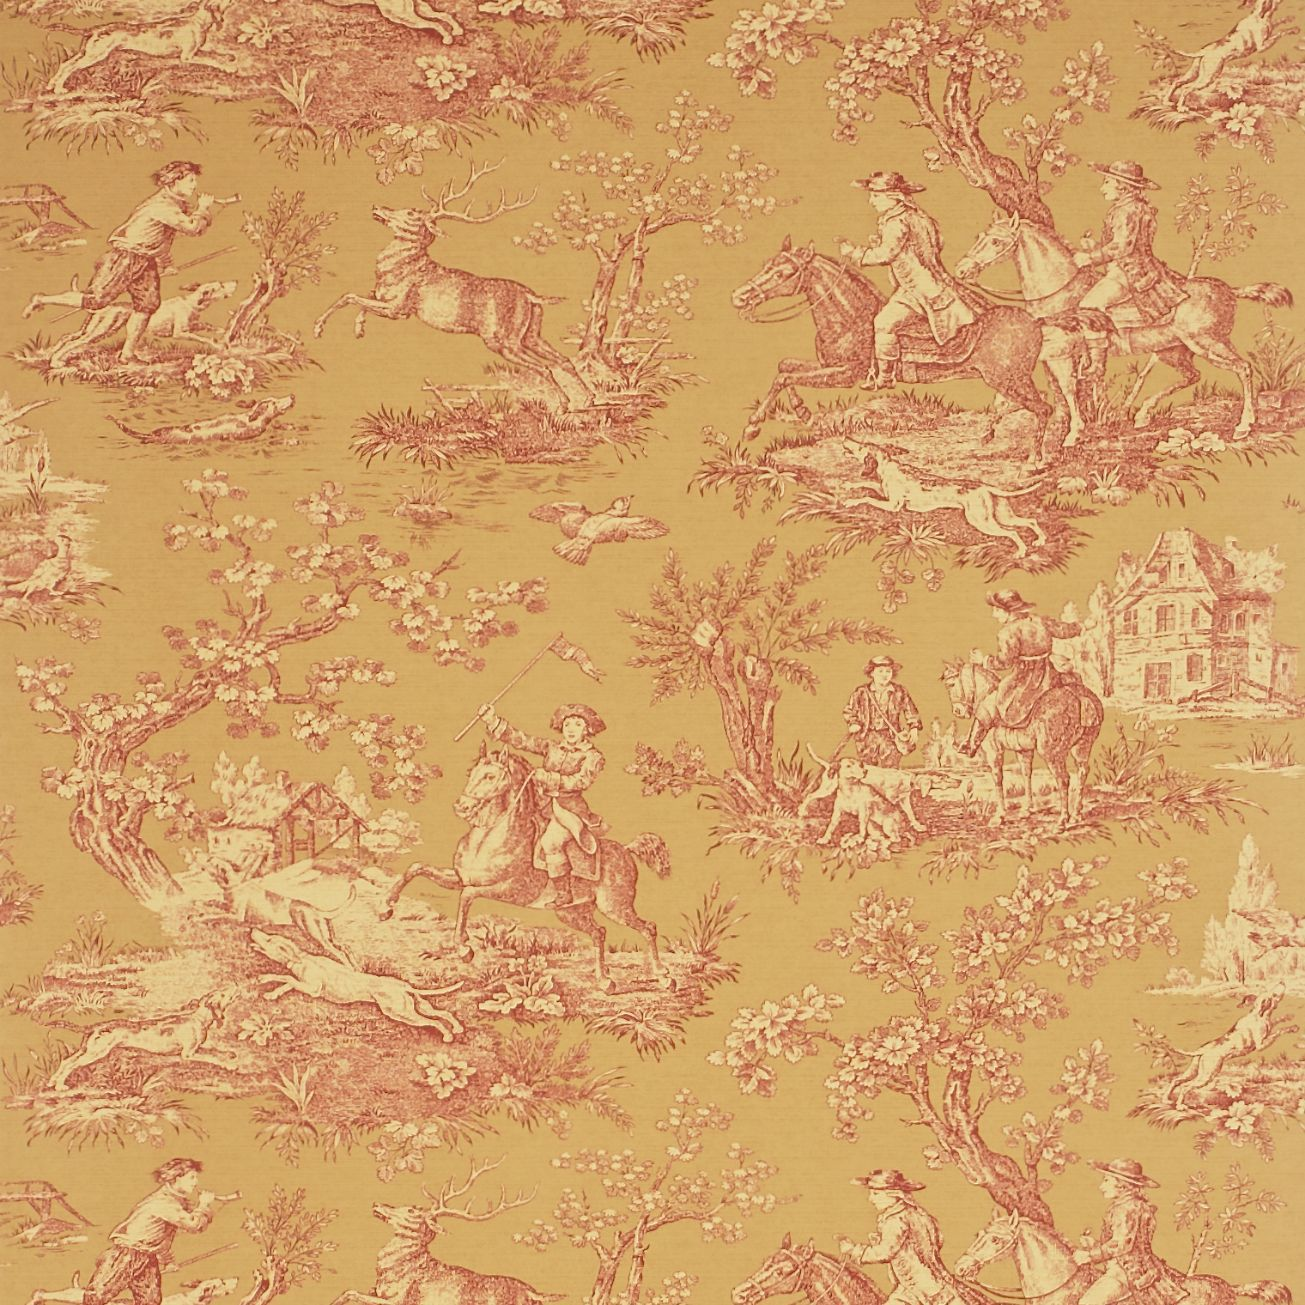 Stag Hunting toile wallpaper by Sanderson Toile